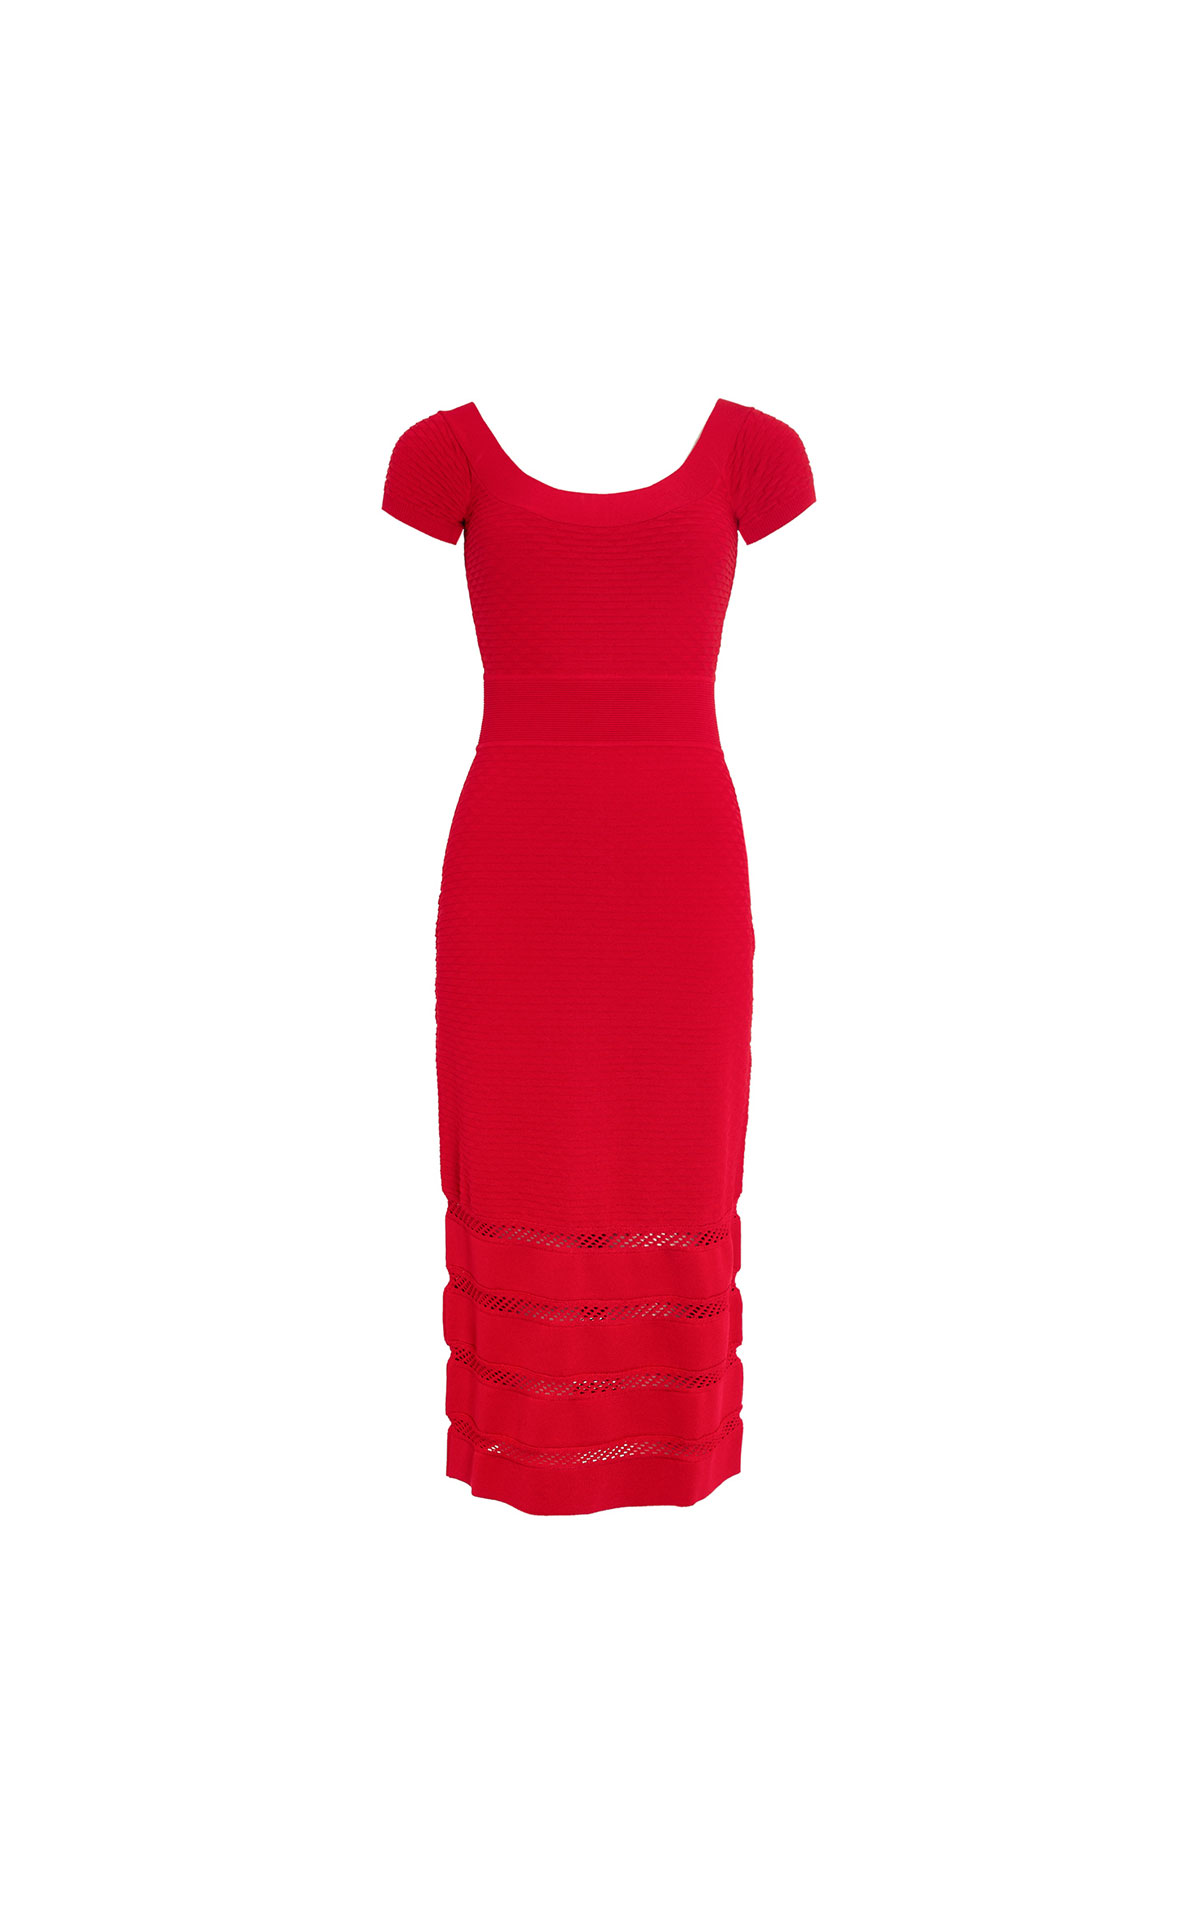 Temperley London Kasha knit dress from Bicester Village